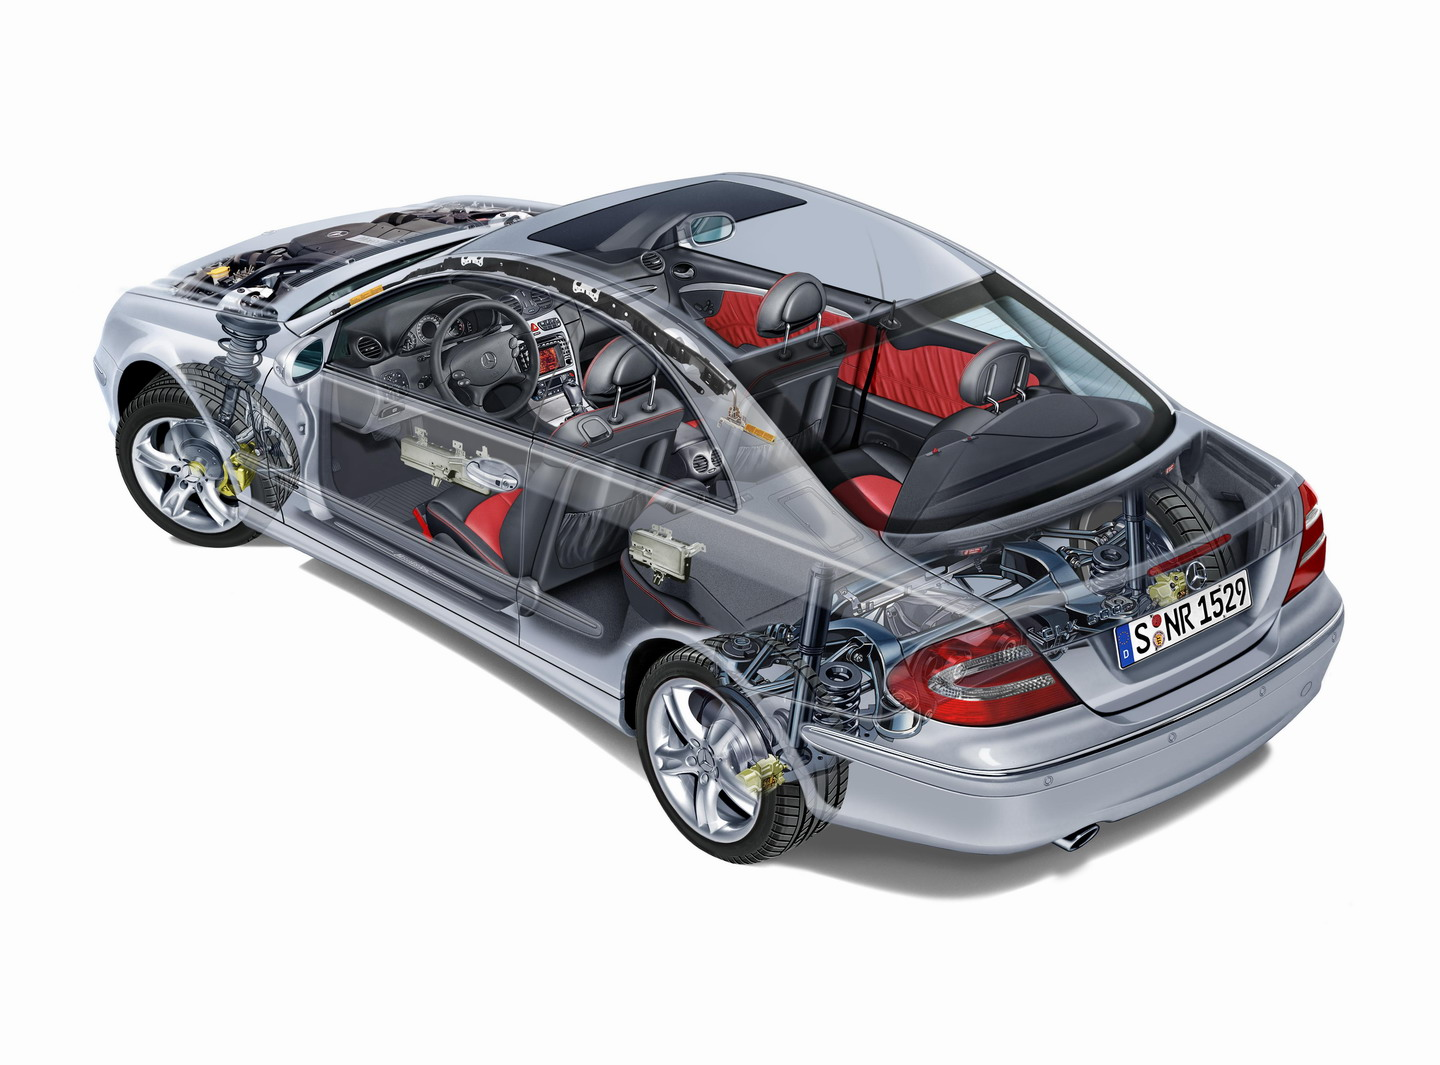 2007 Mercedes CLK Coupe | Top Speed. »